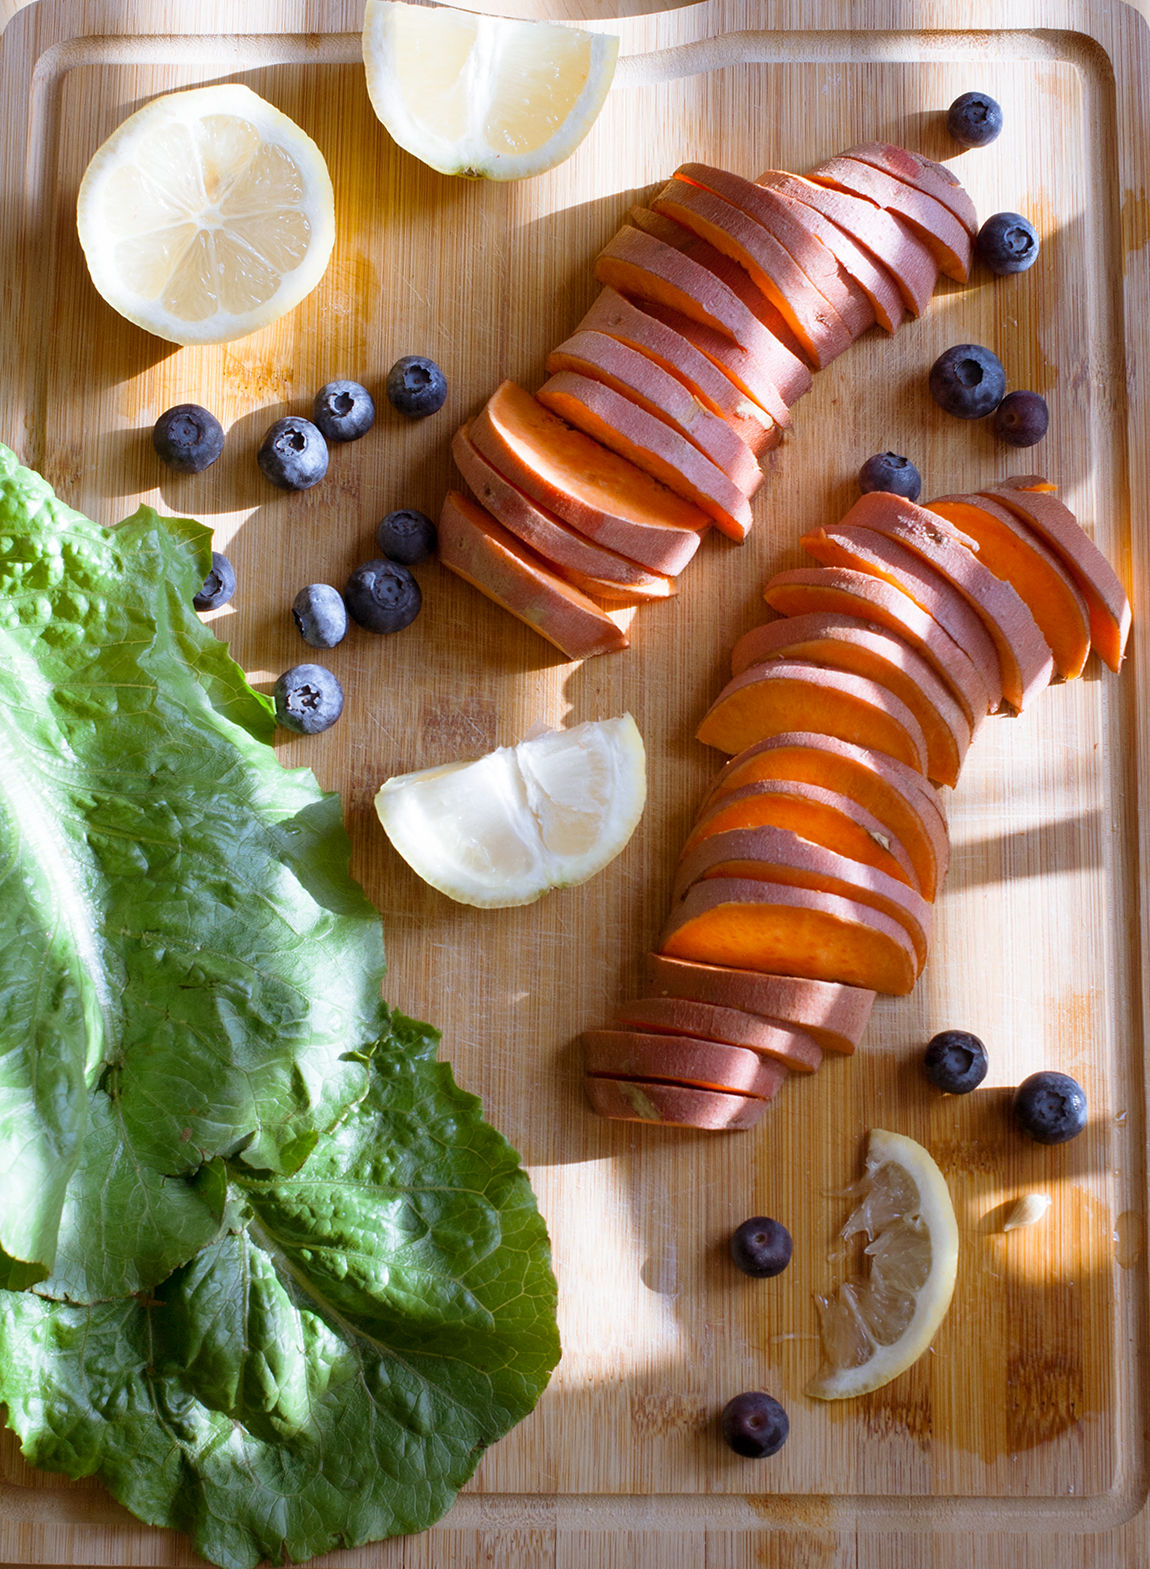 Ingredients for a blueberry sweet potato salad